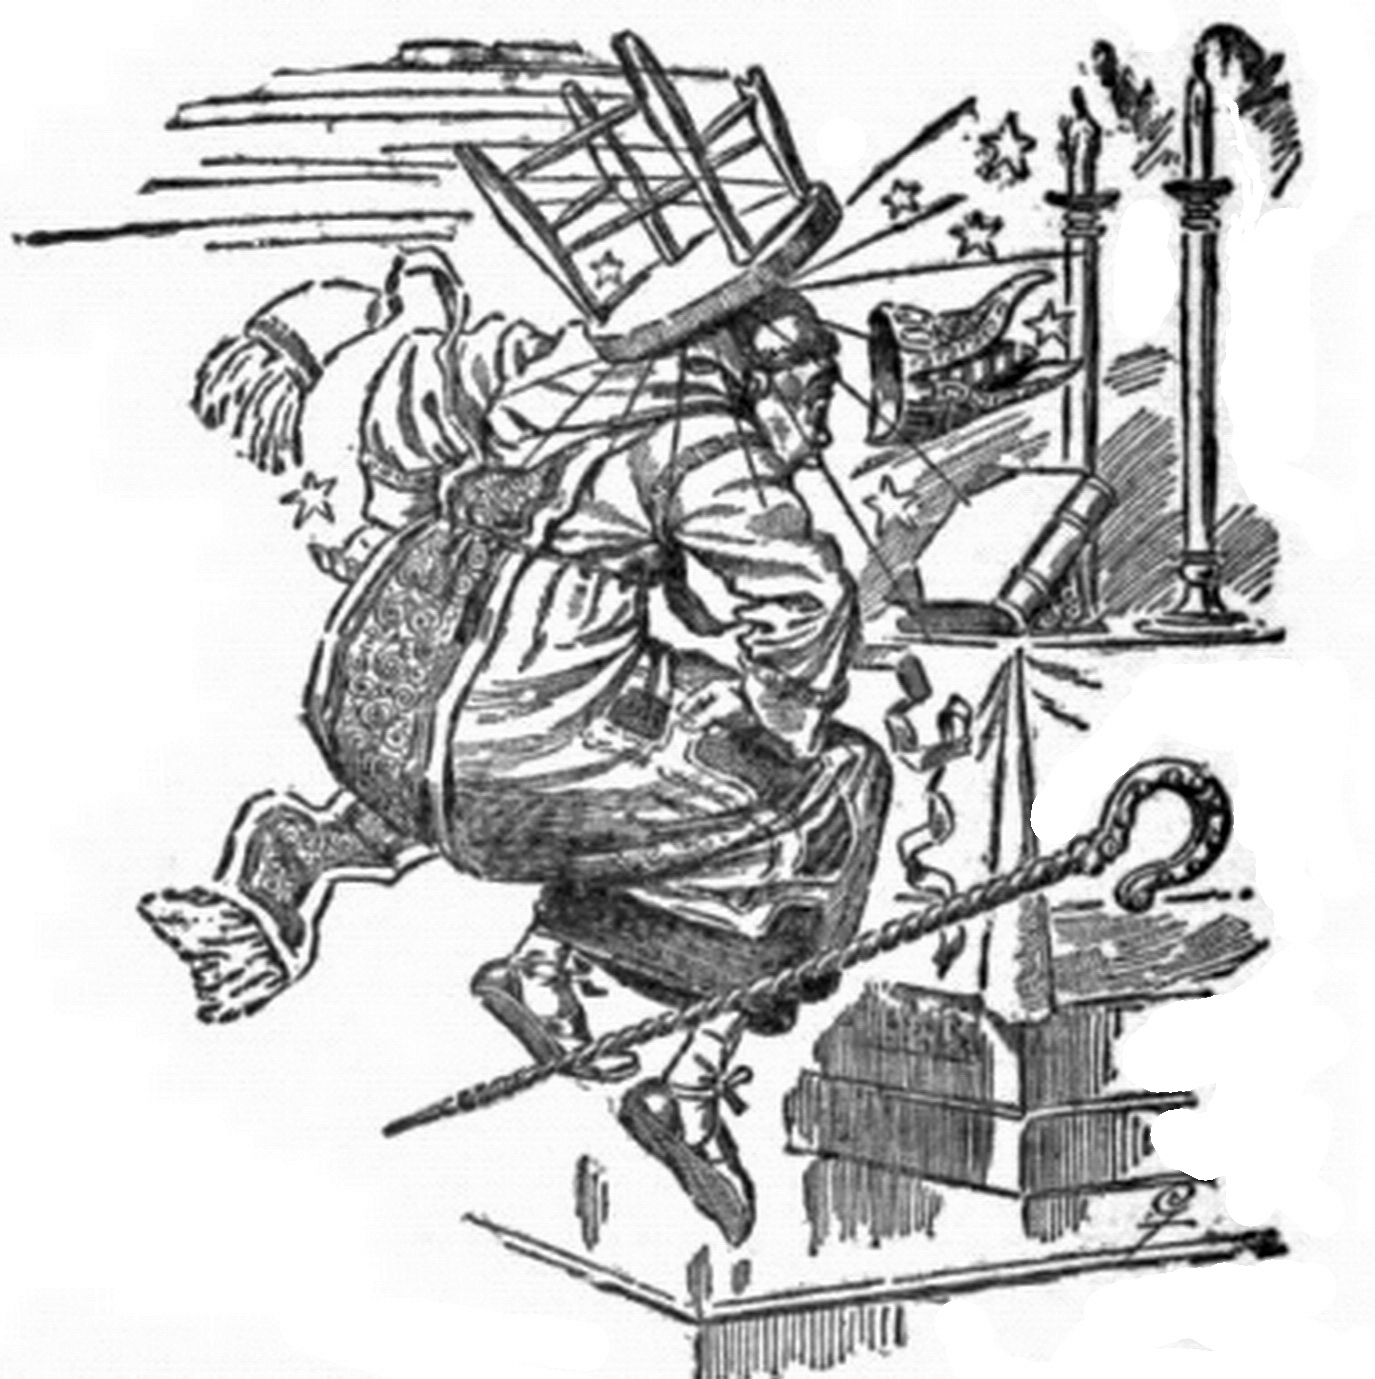 A pen-and-ink comic of a stool hitting a man in the head